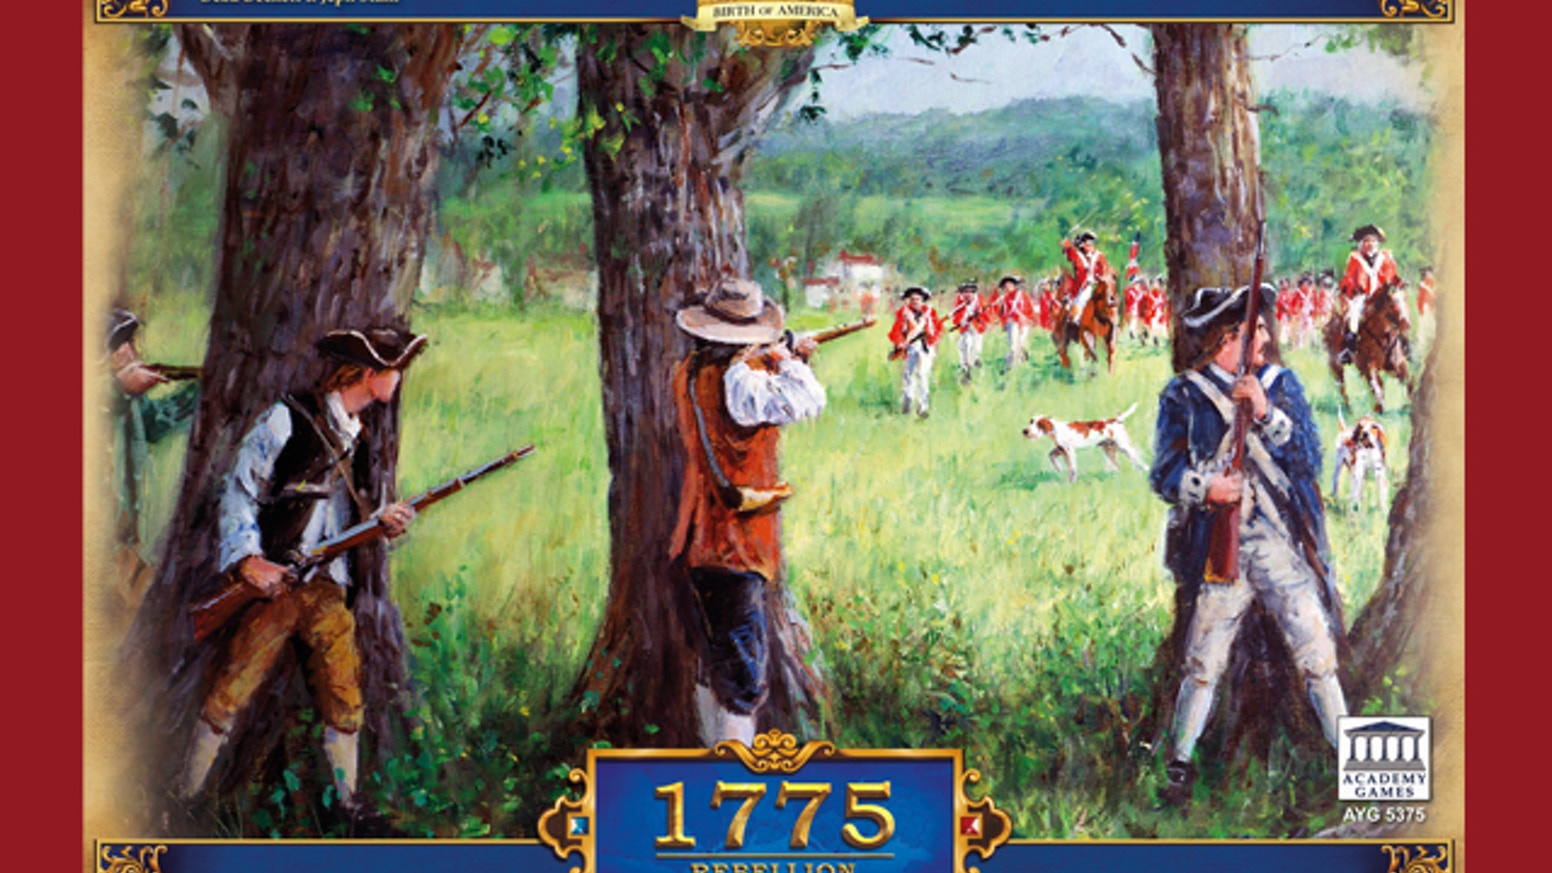 It's 1775 and the Americans are starting a Rebellion!